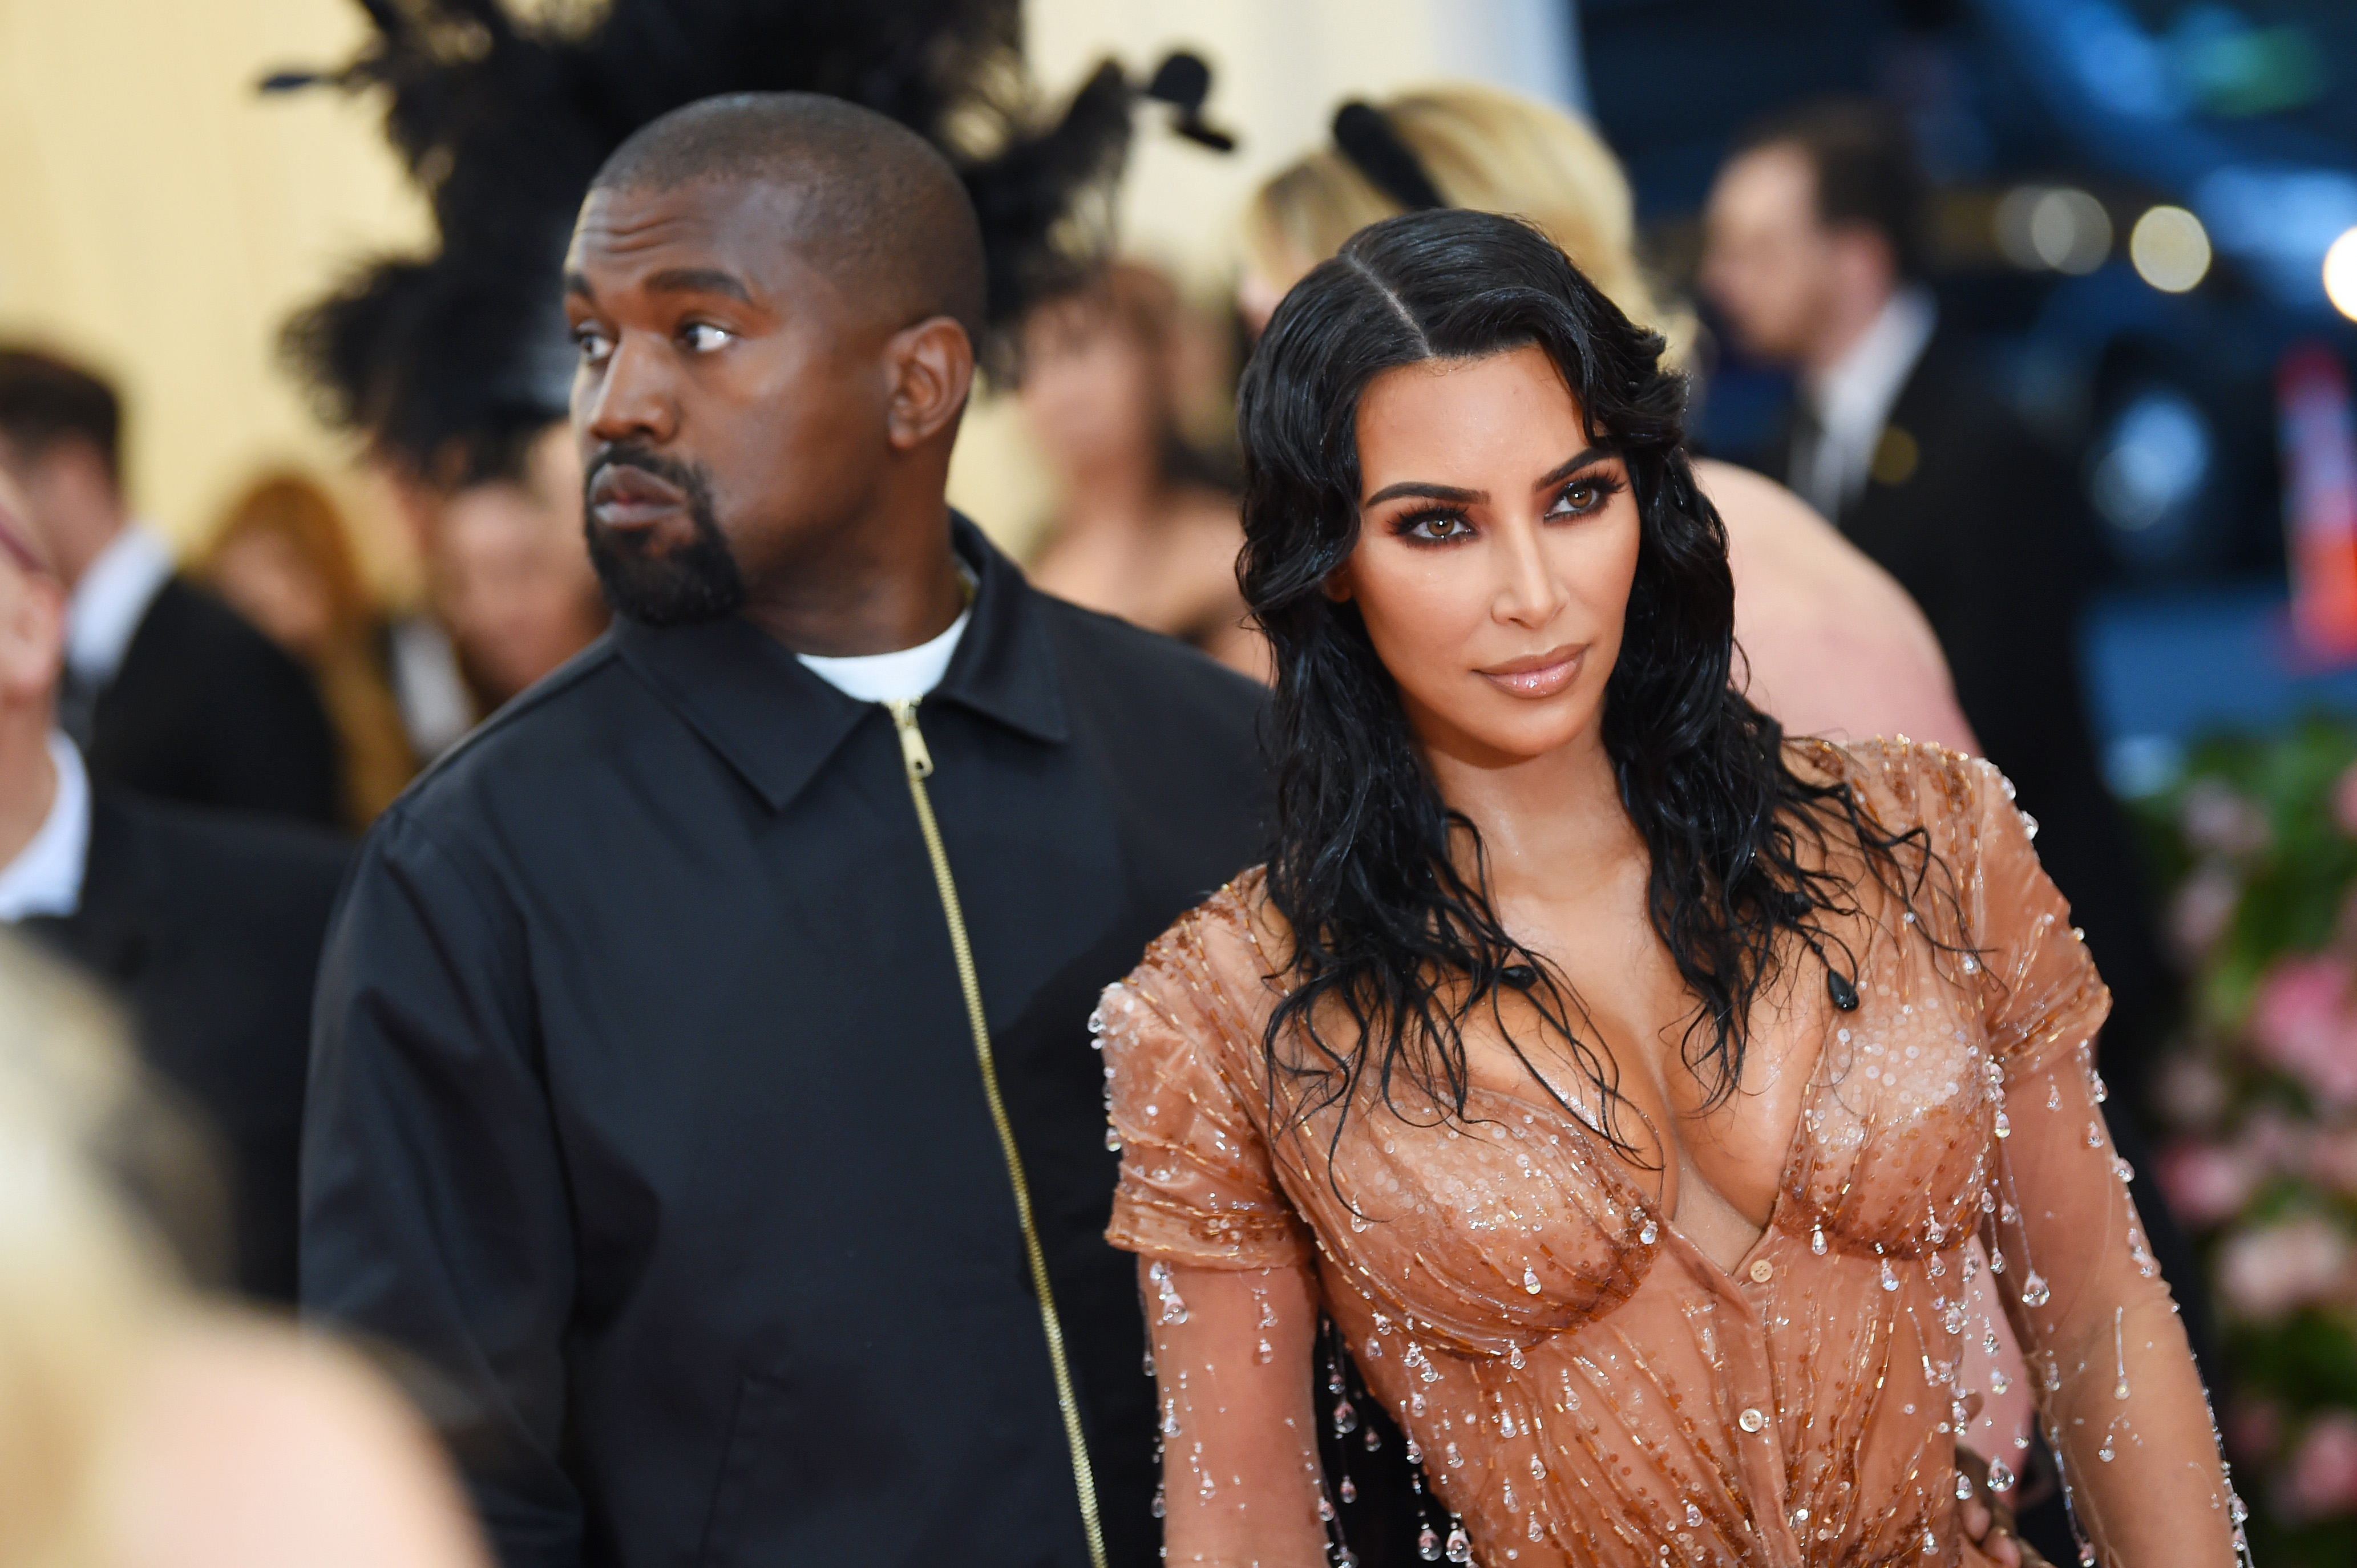 """Kim Kardashian shared a preview of the music video for Kanye West's song """"Follow God,"""" which is on his new album """"Jesus is King."""""""